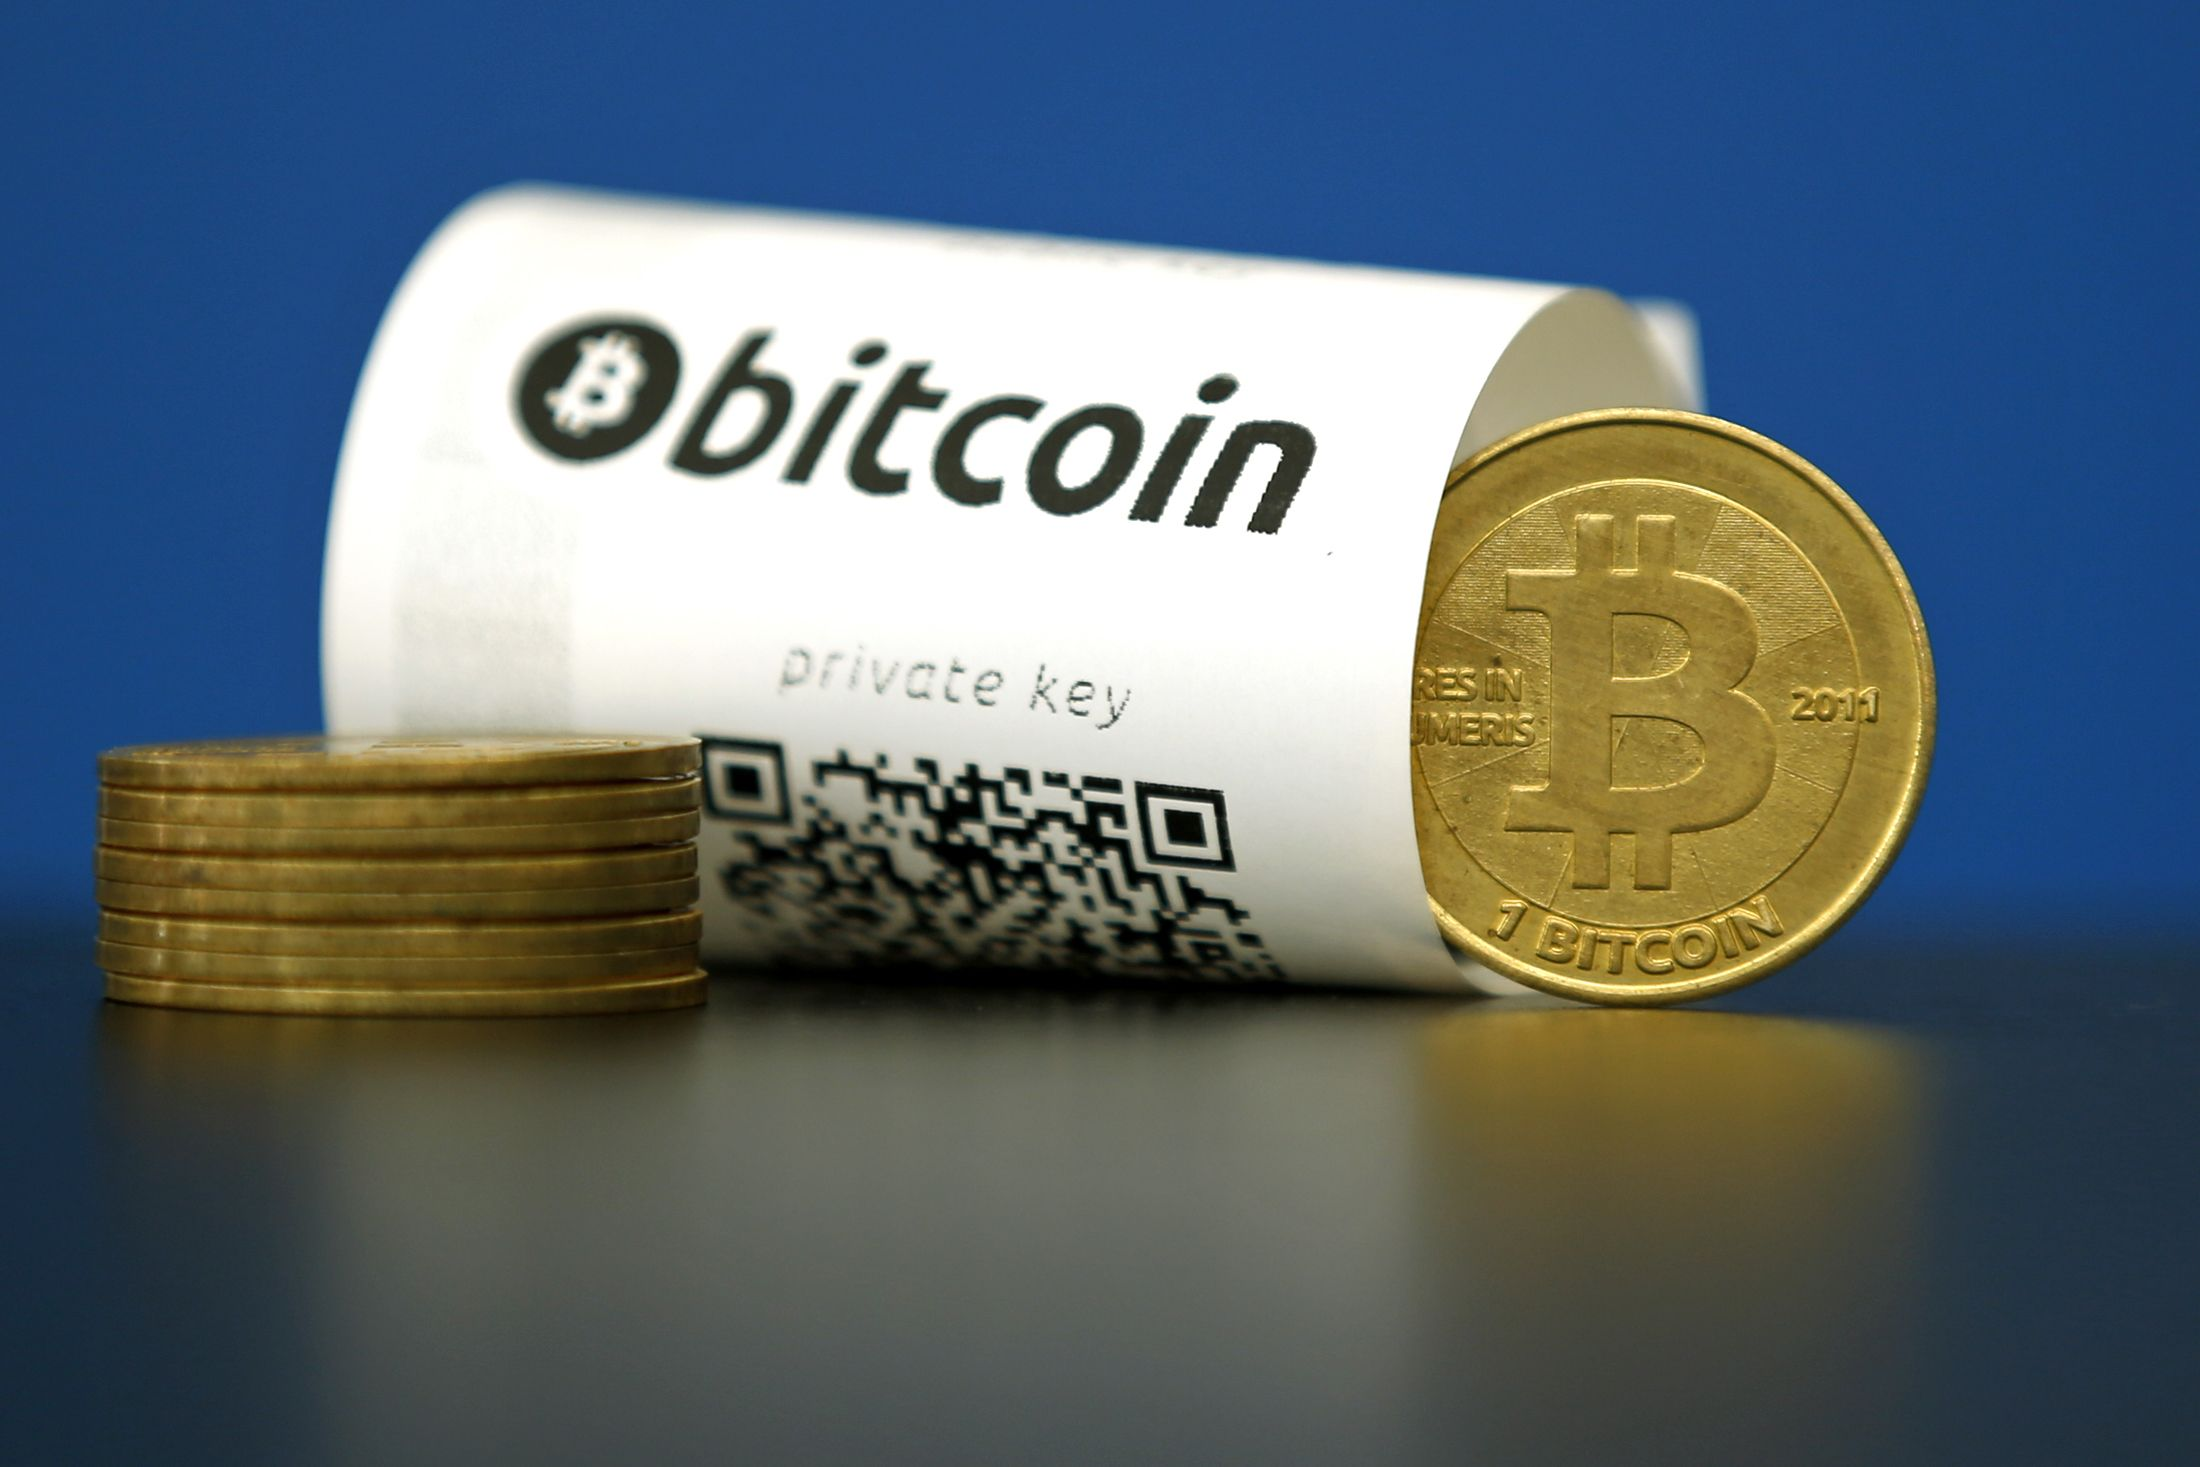 Isle of Man, Tax Haven With Tailless Cats, Becomes Bitcoin Hub